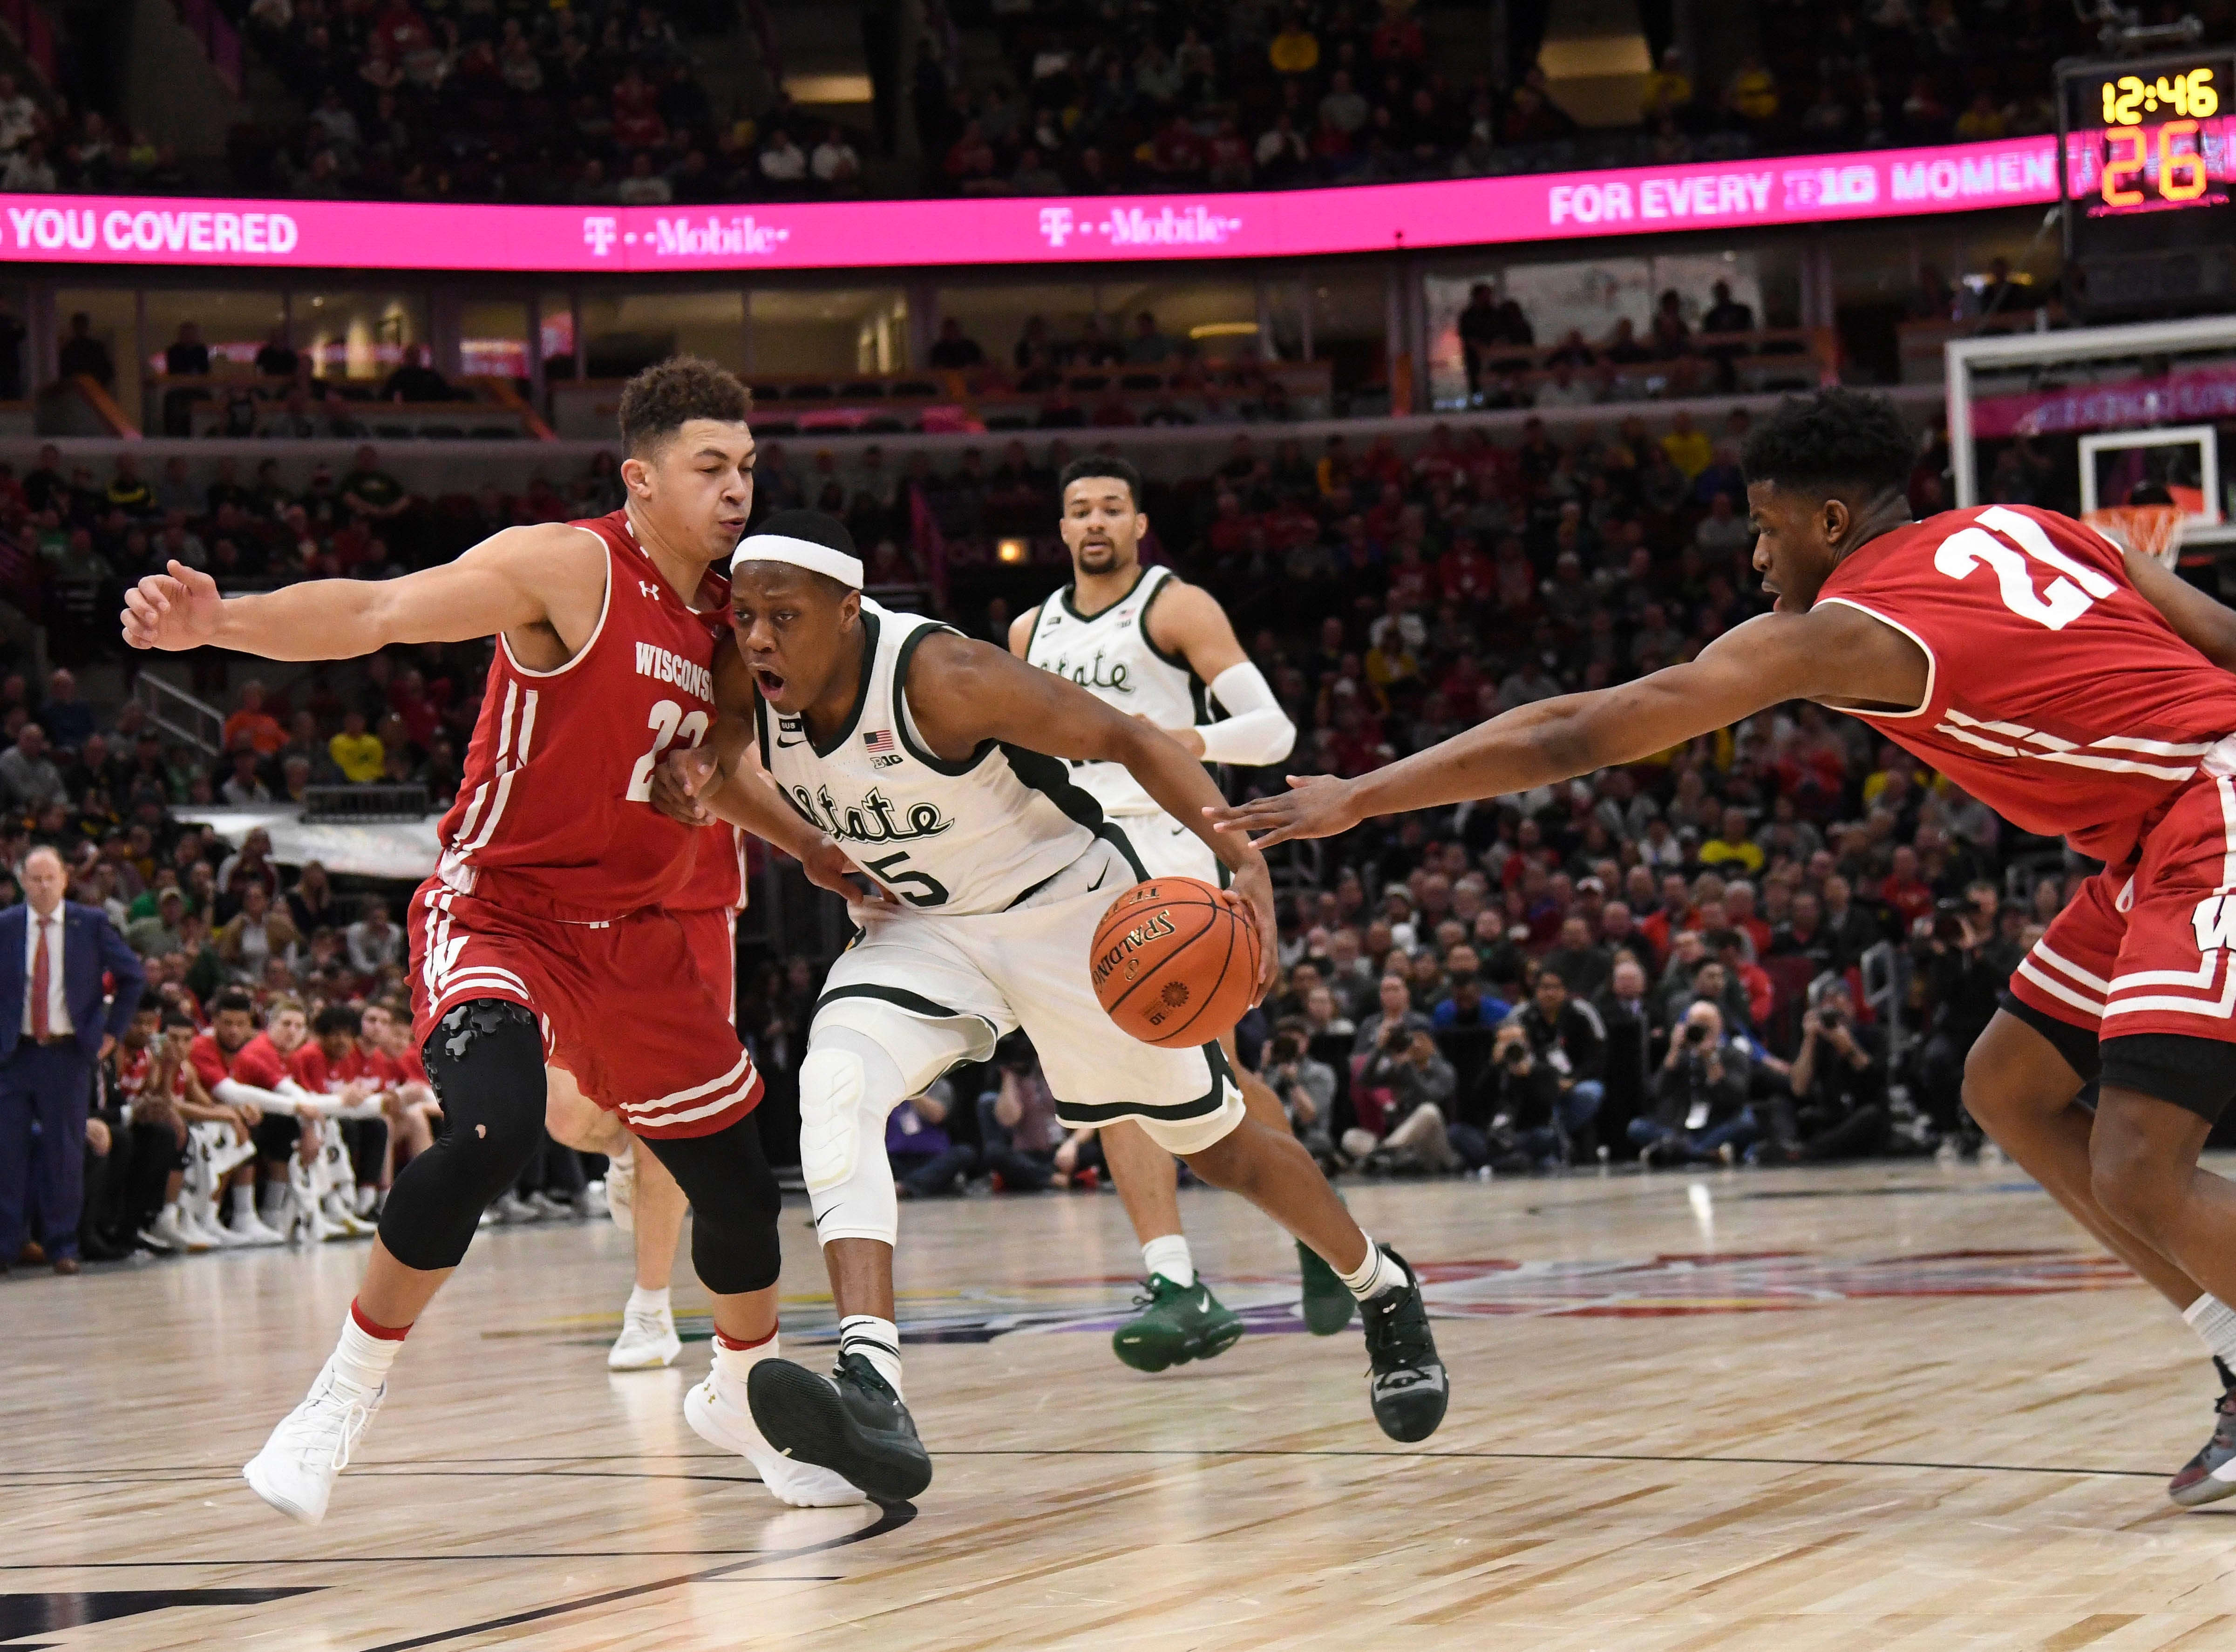 Michigan State Spartans guard Cassius Winston (5) dribbles the ball as Wisconsin Badgers guard Kobe King (23) defends during the second half in the Big Ten conference tournament at United Center.